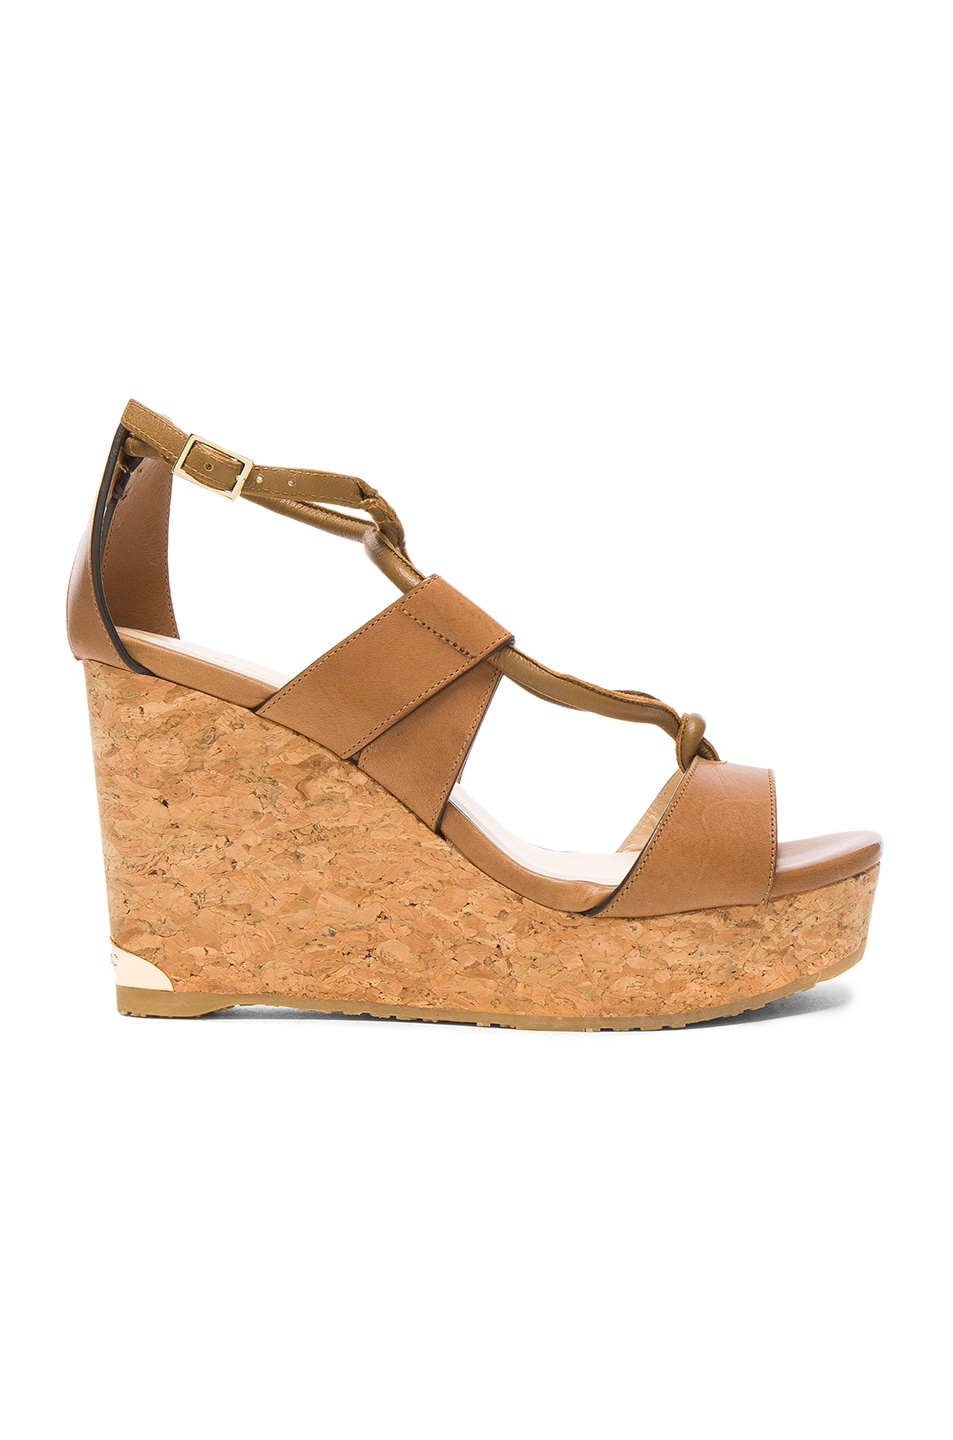 Image 1 of Jimmy Choo Leather Nelson Wedges in Tan